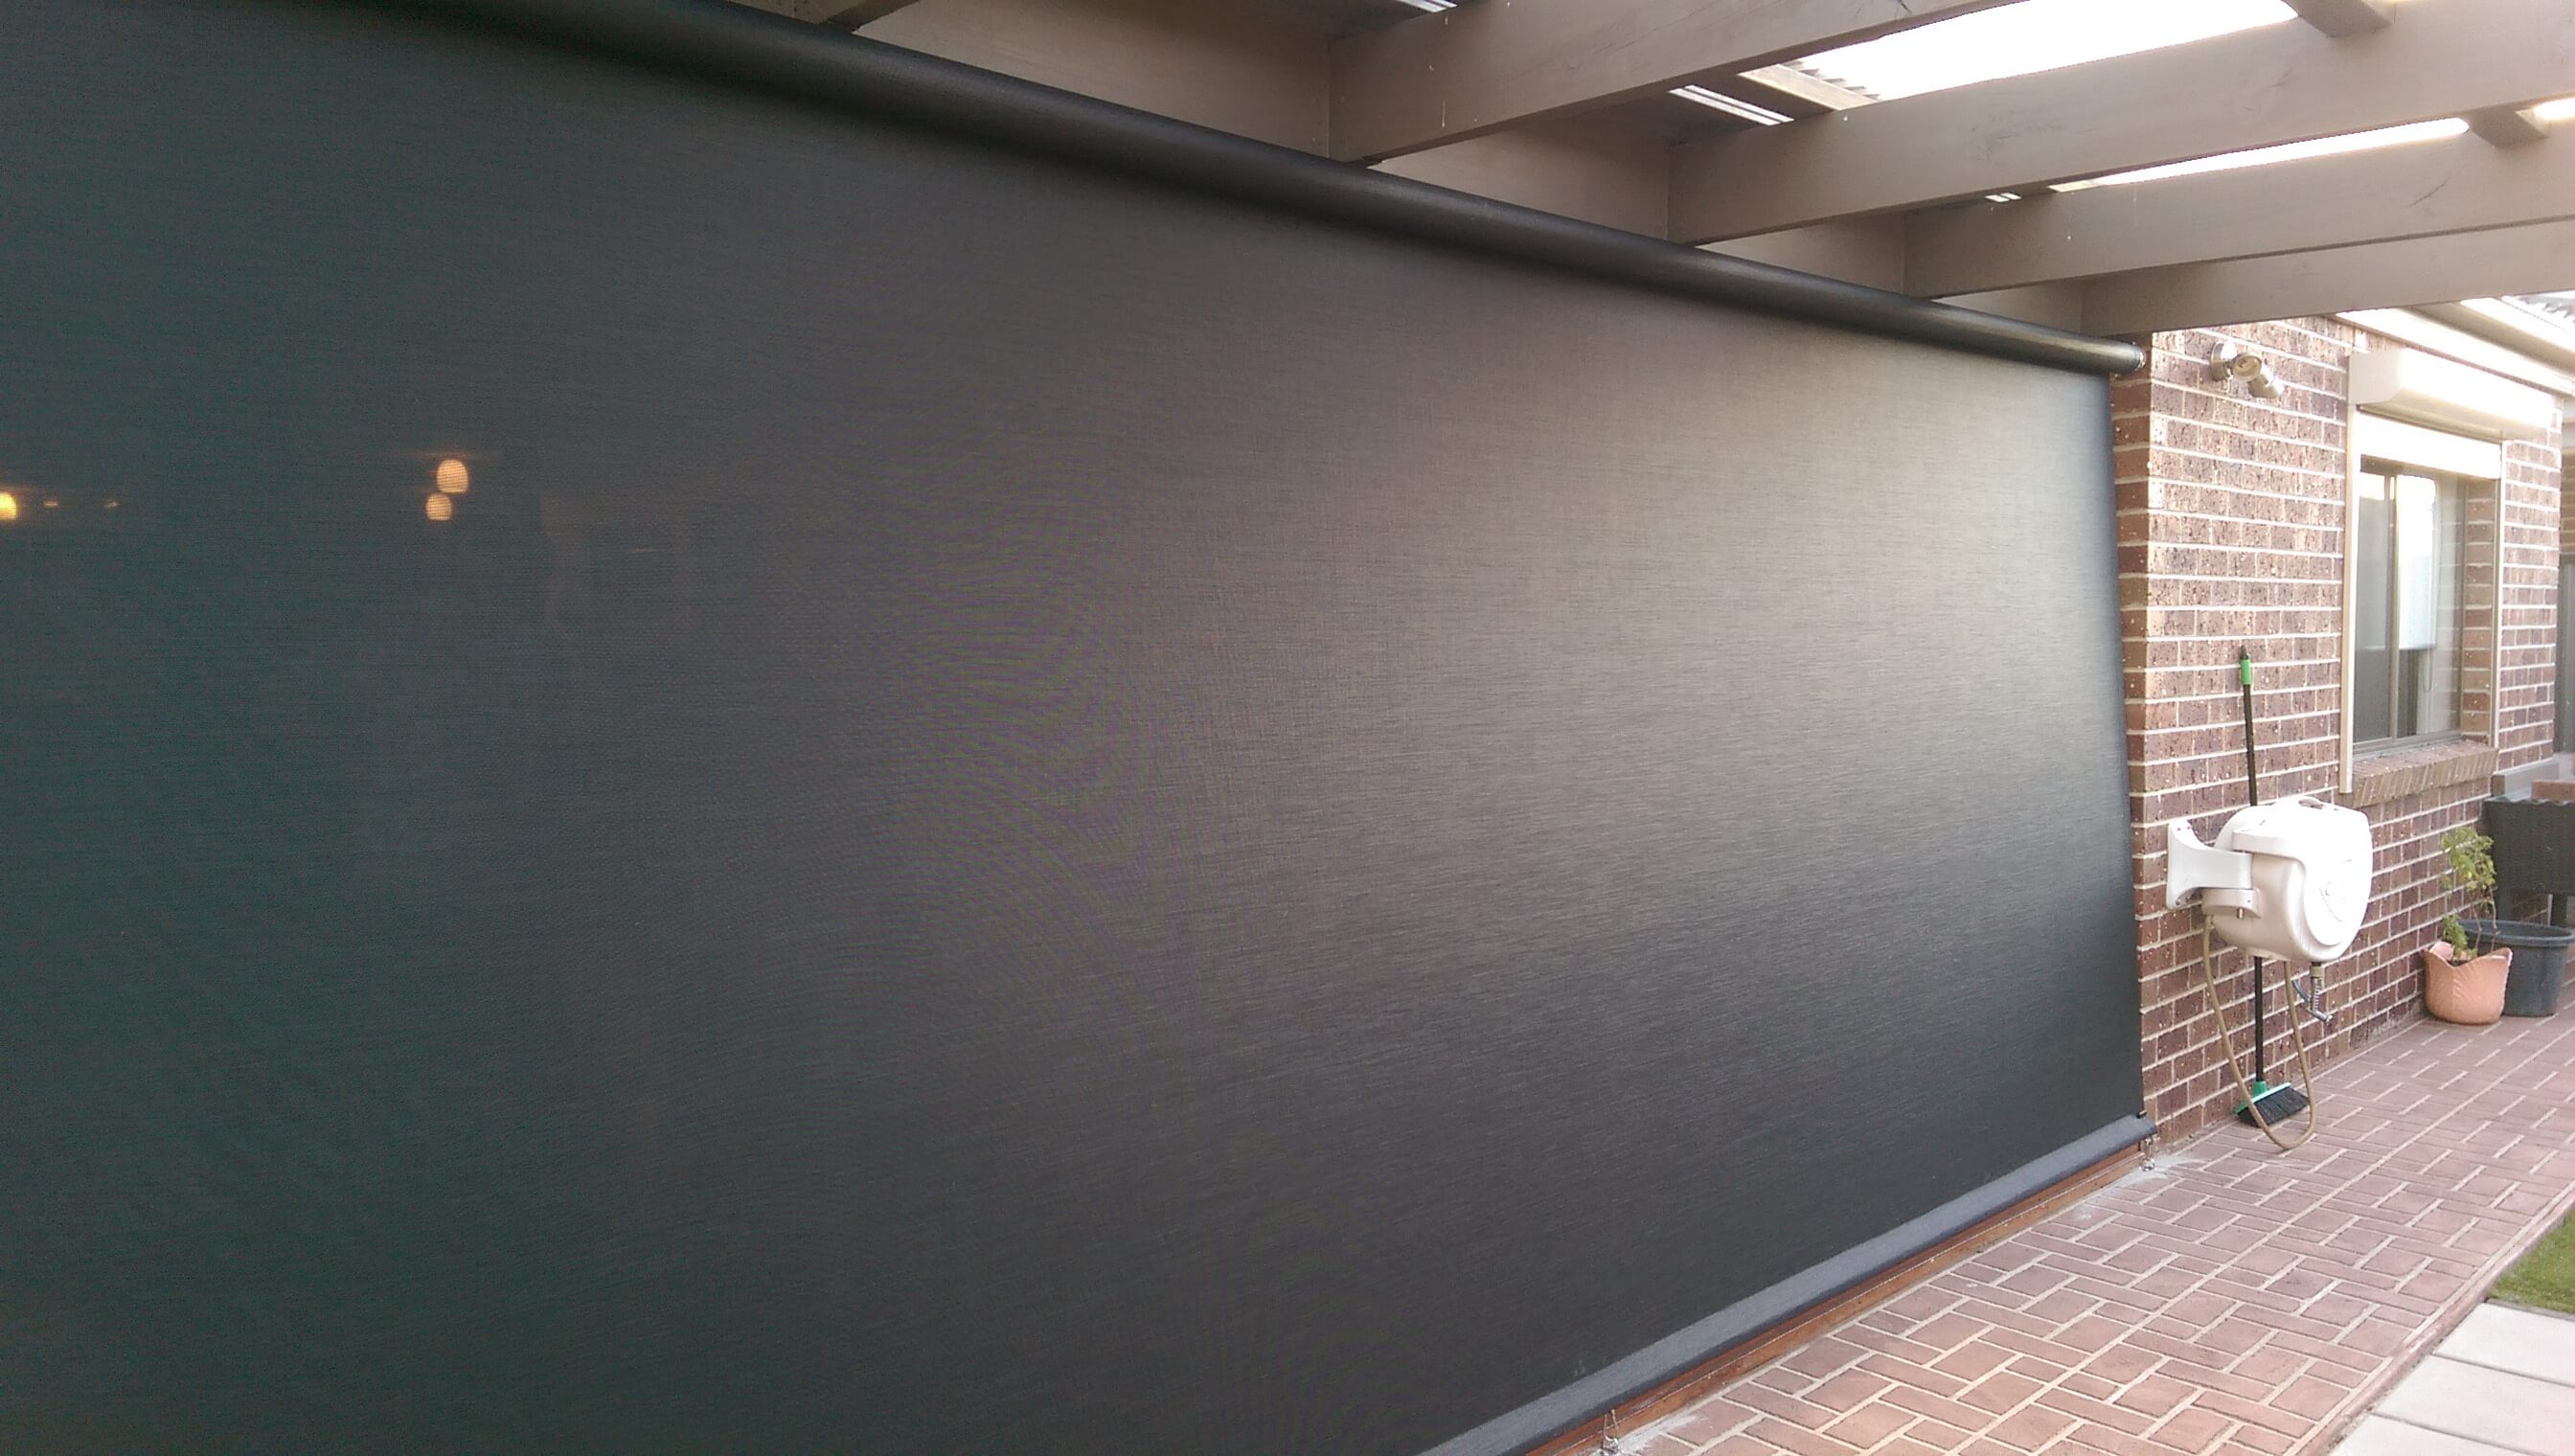 CAFE BLIND WITH VISTAWEAVE 5% OUTSIDE